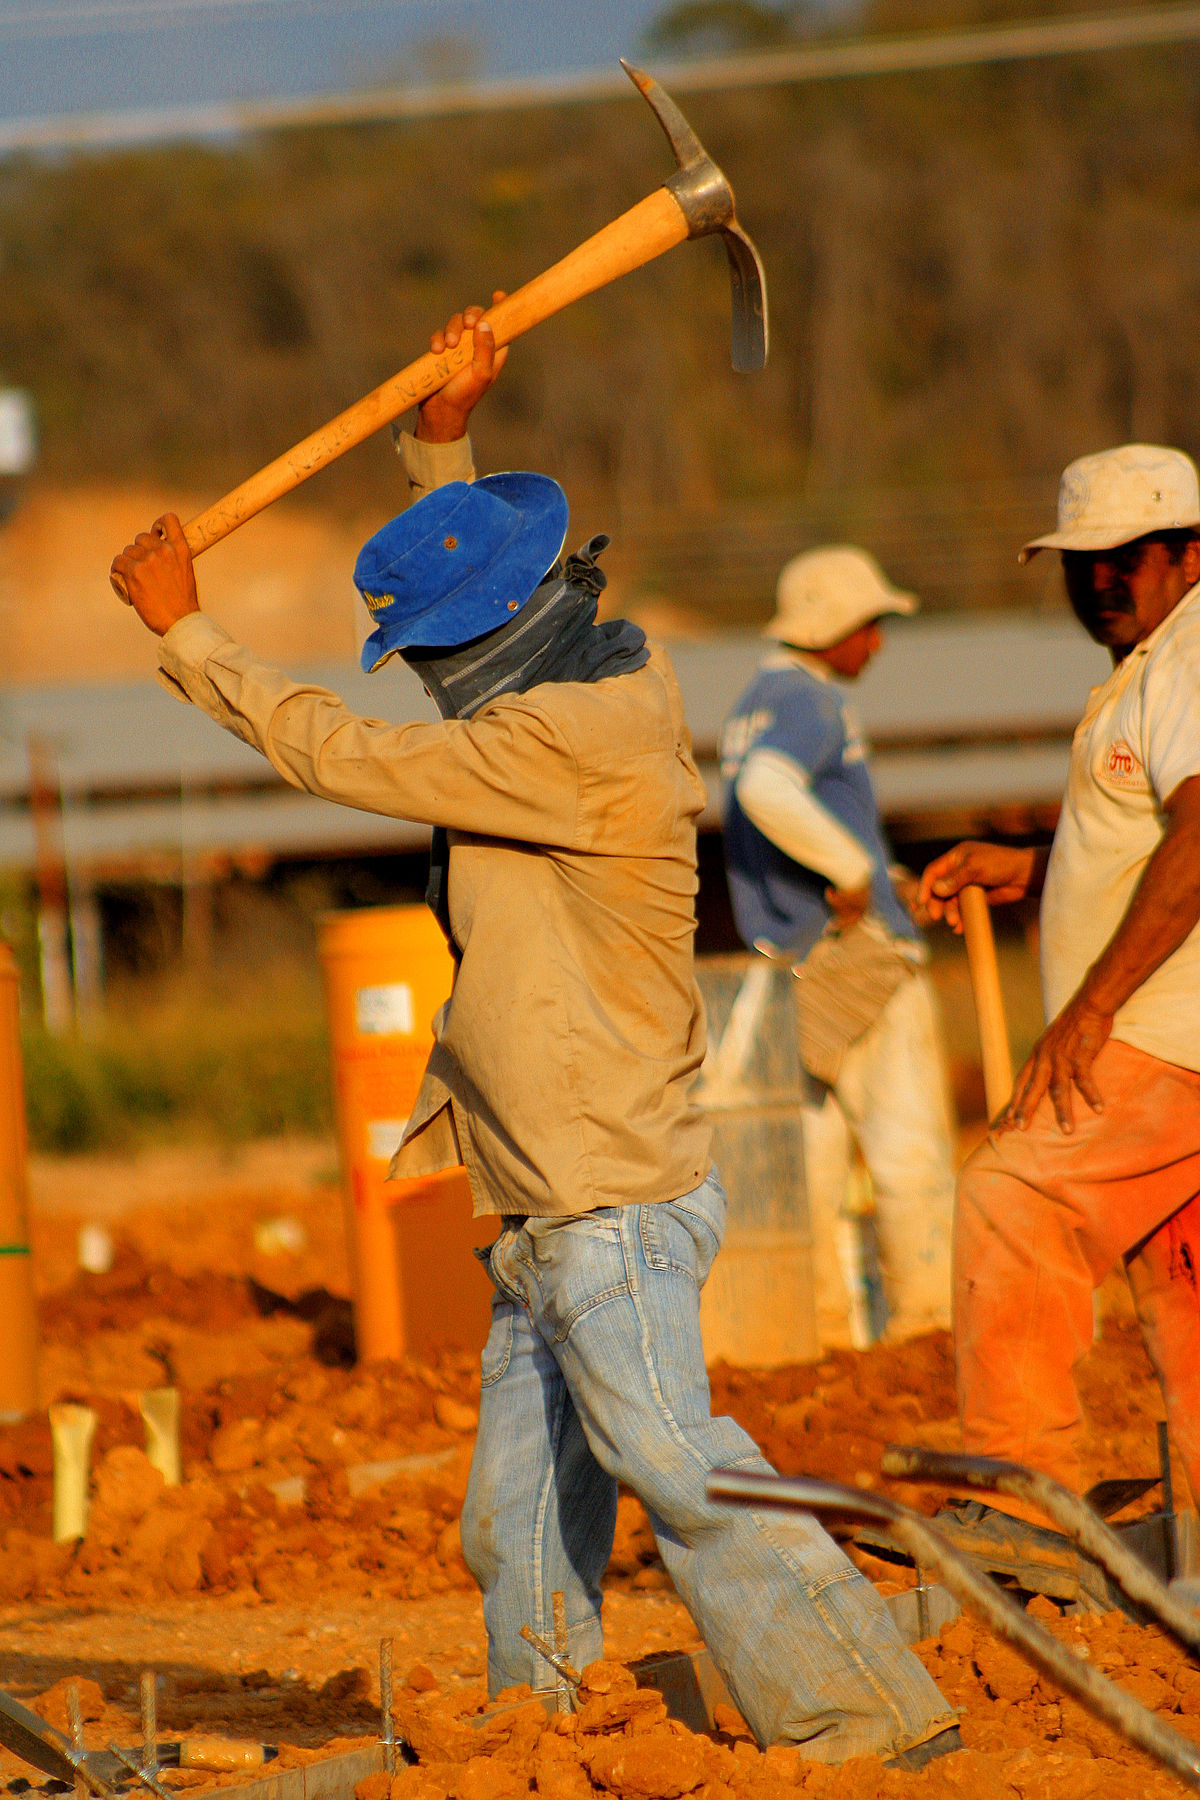 Blue-collar worker - Wikipedia